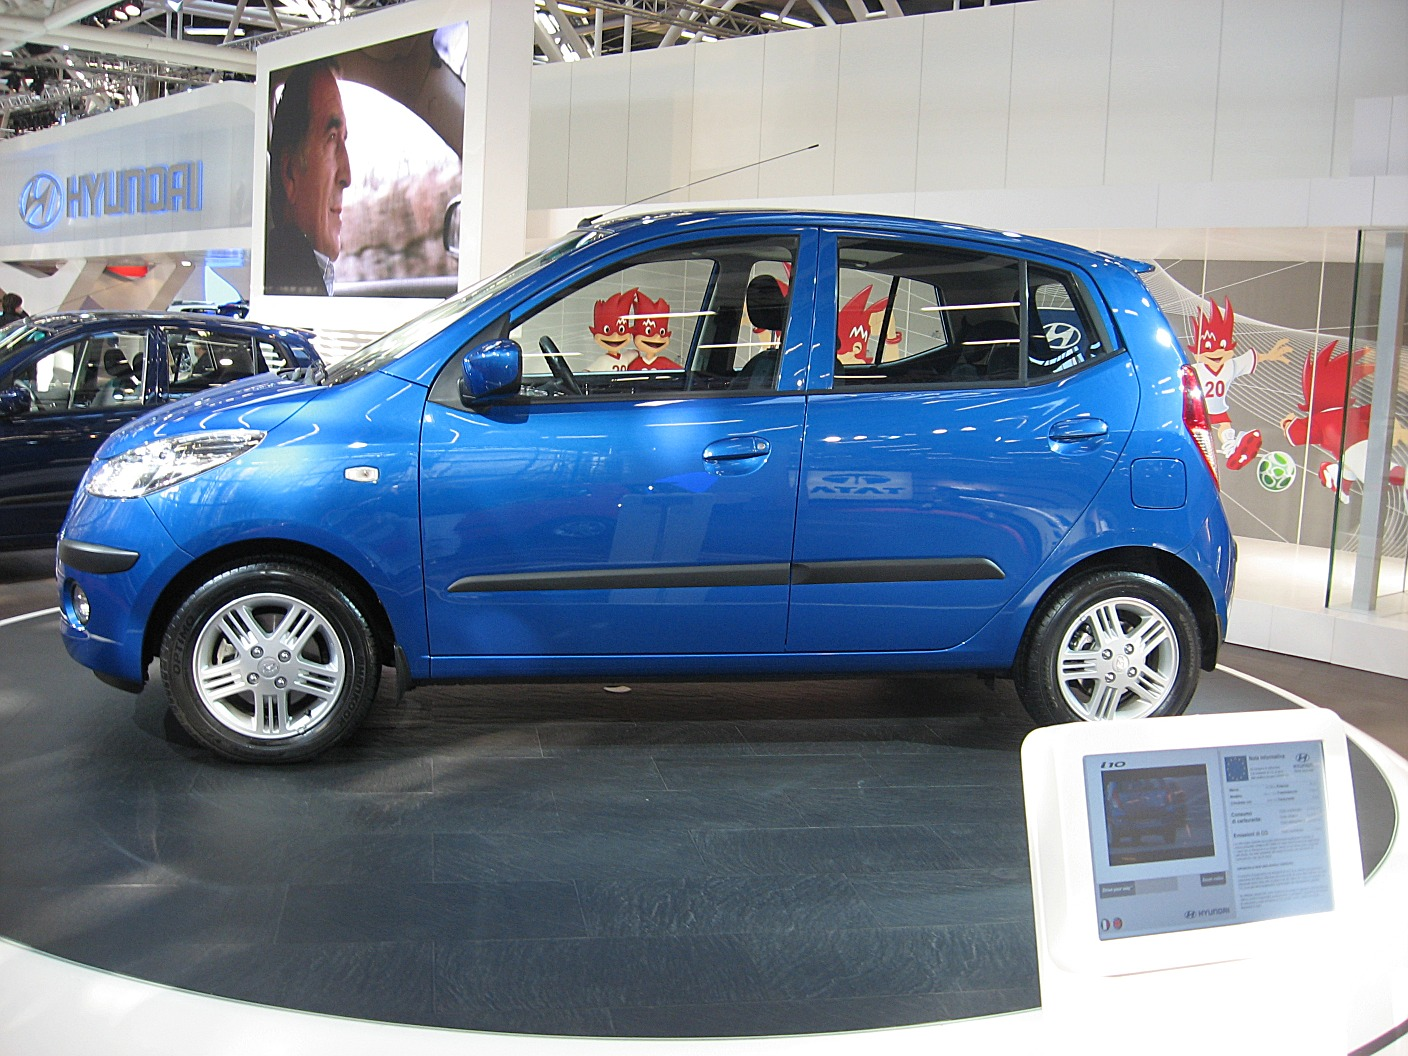 File Hyundai I10 Side View Jpg Wikimedia Commons